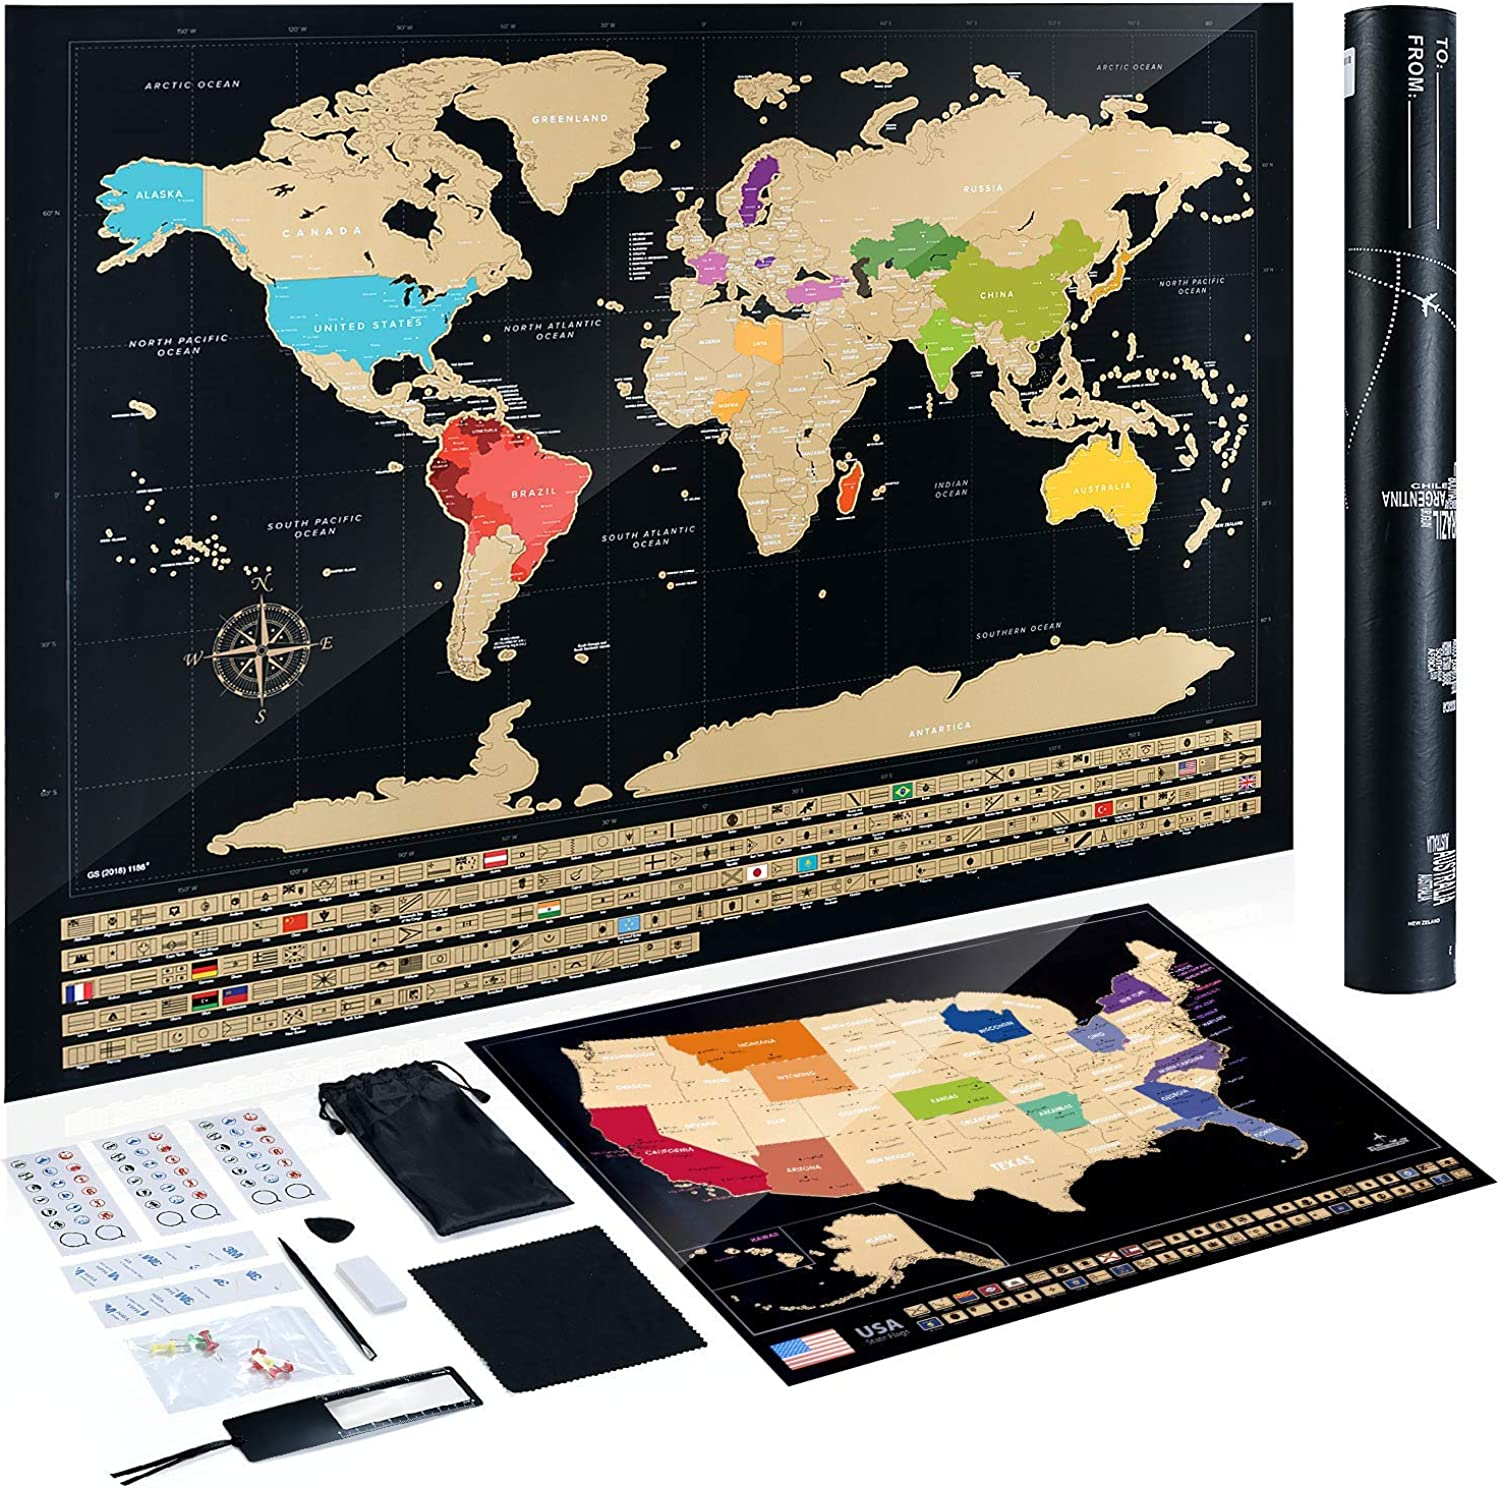 TOBEHIGHER Premium Extra Large 36  X 22.5  Scratch Off Map of The World - Bonus Scratch Off USA Map, Tracks Your Adventures. Includes Precision Scratch Tool, Perfect for Travelers